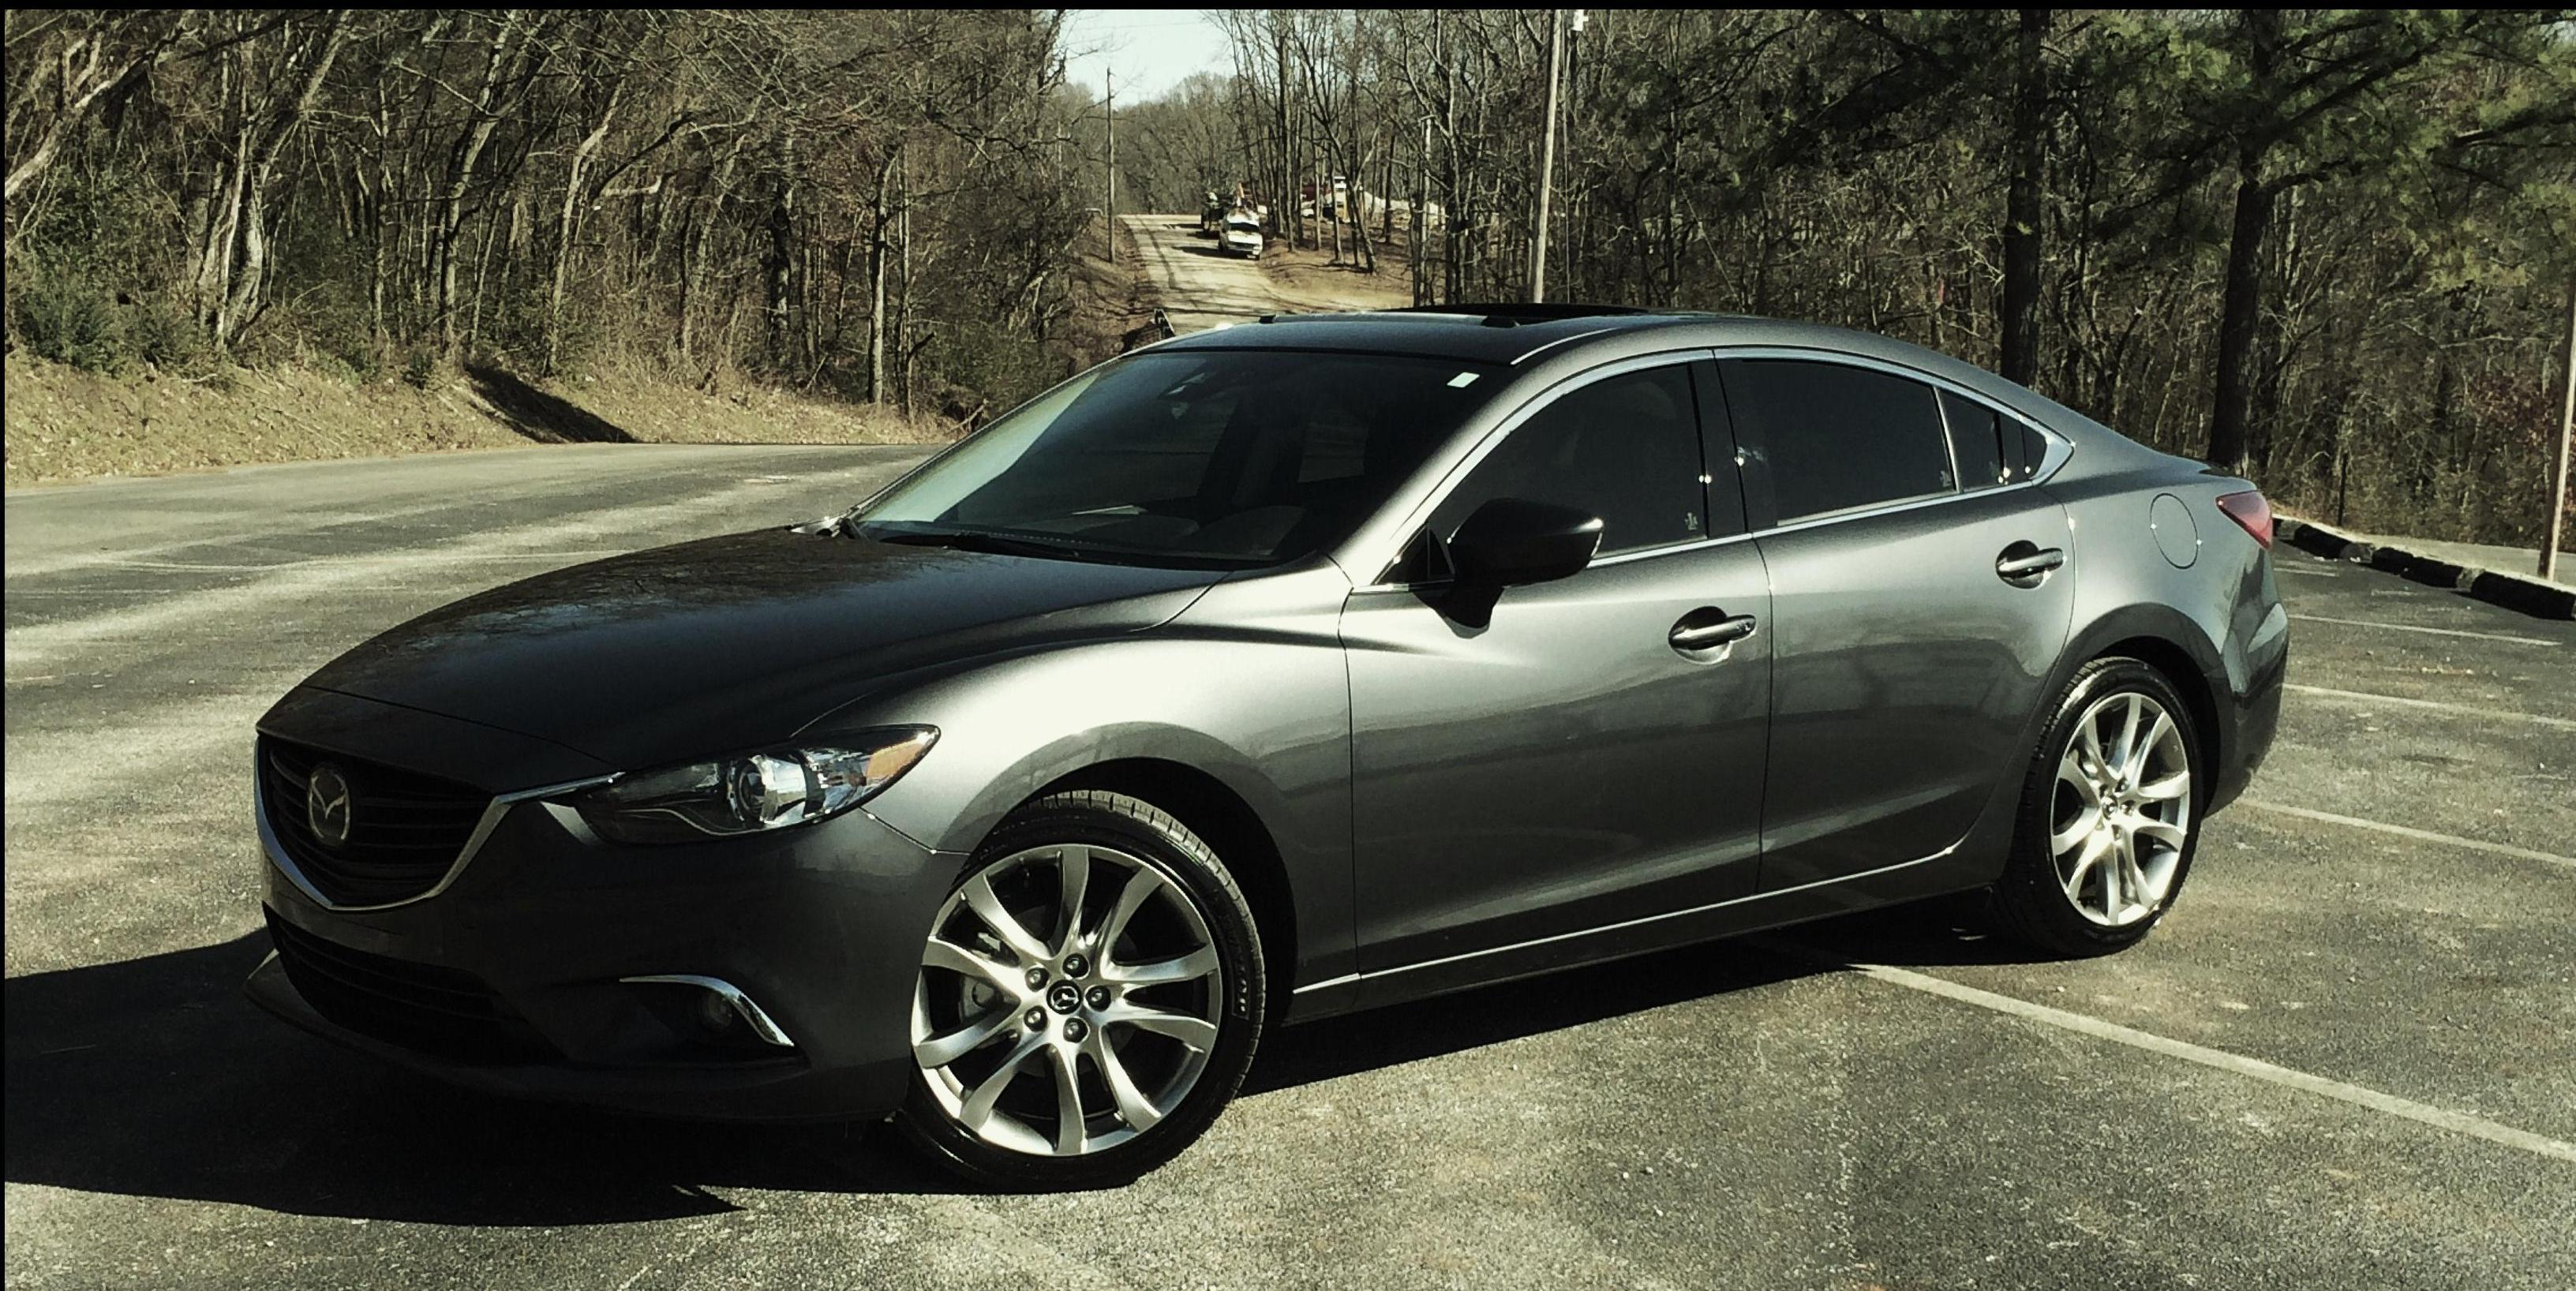 2014 Mazda 6 | Mazda 6 | Pinterest | Mazda, Sedans and Cars